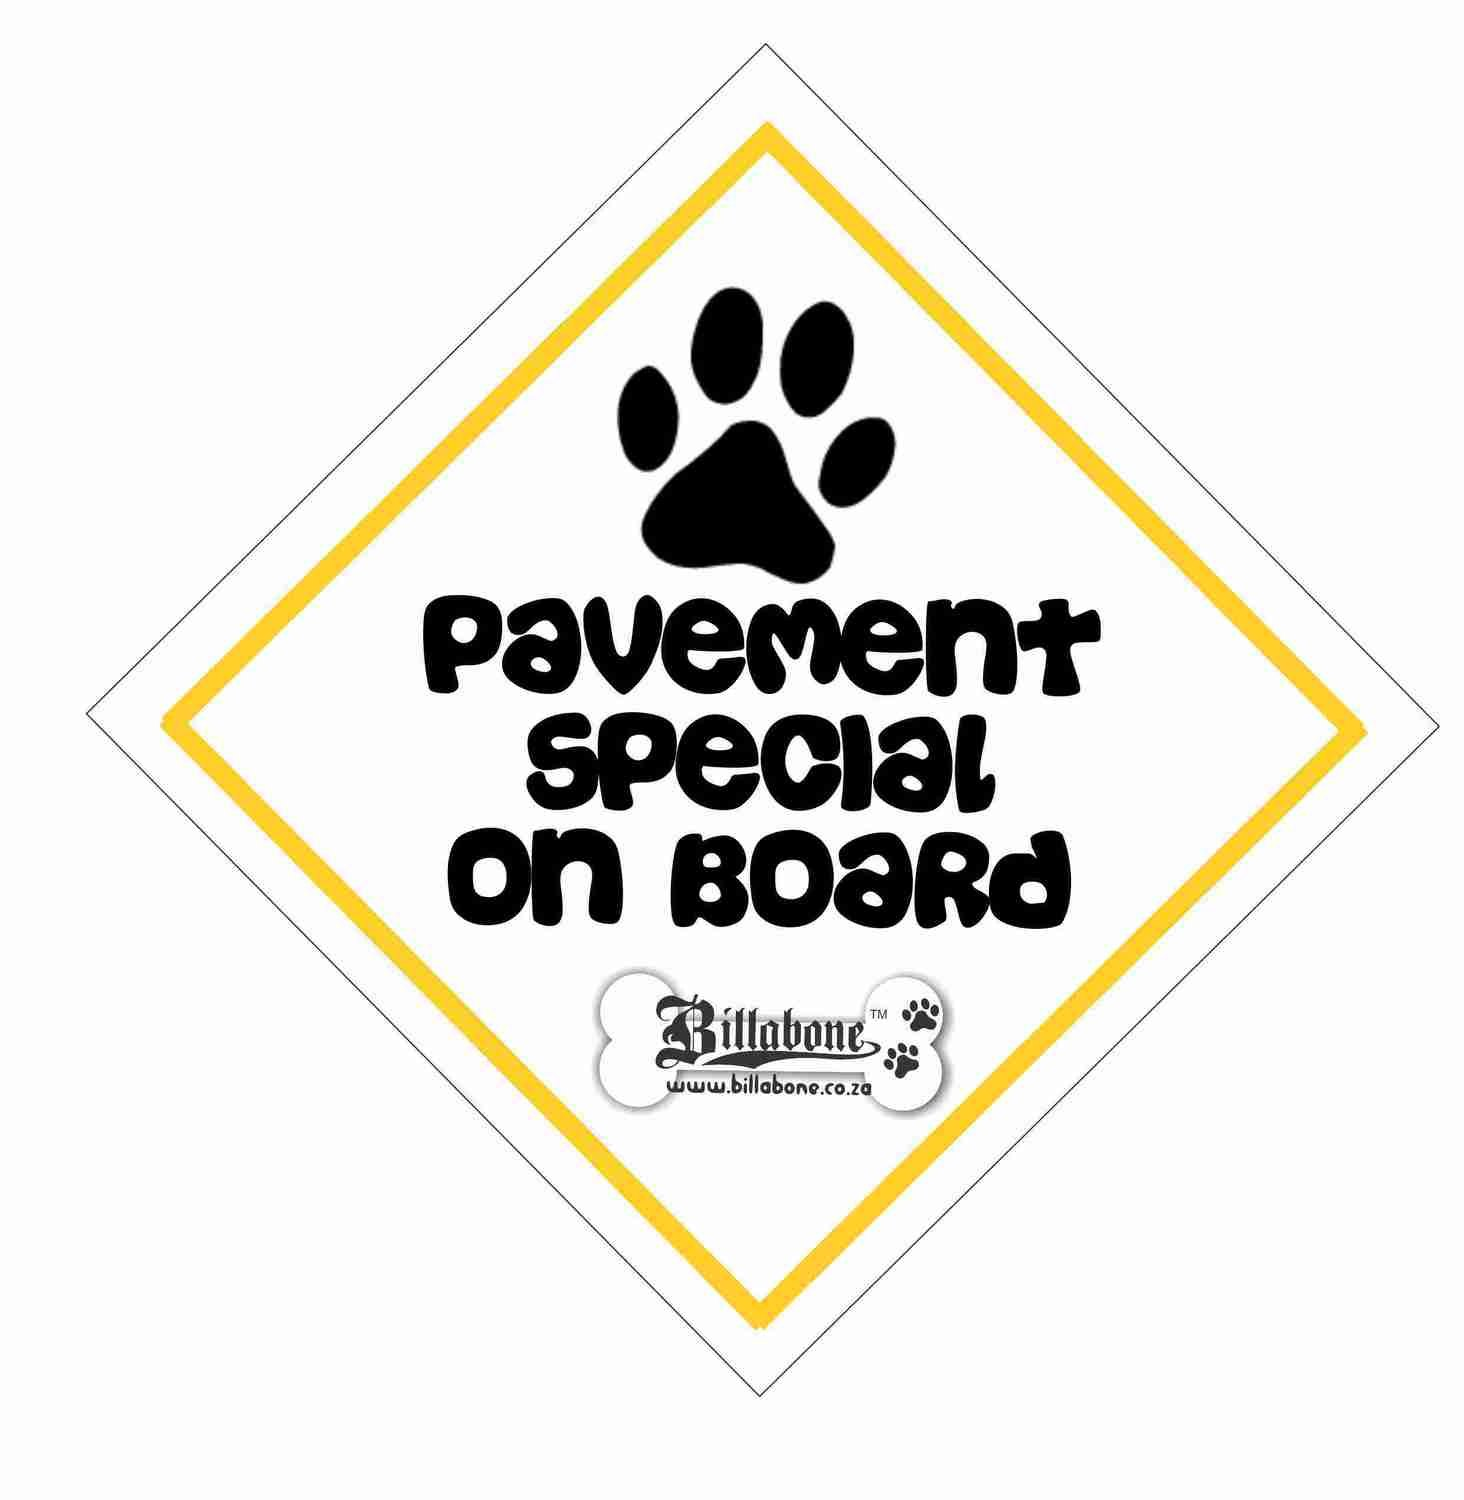 Billabone - Pavement Special on board On Board Sign or Decal